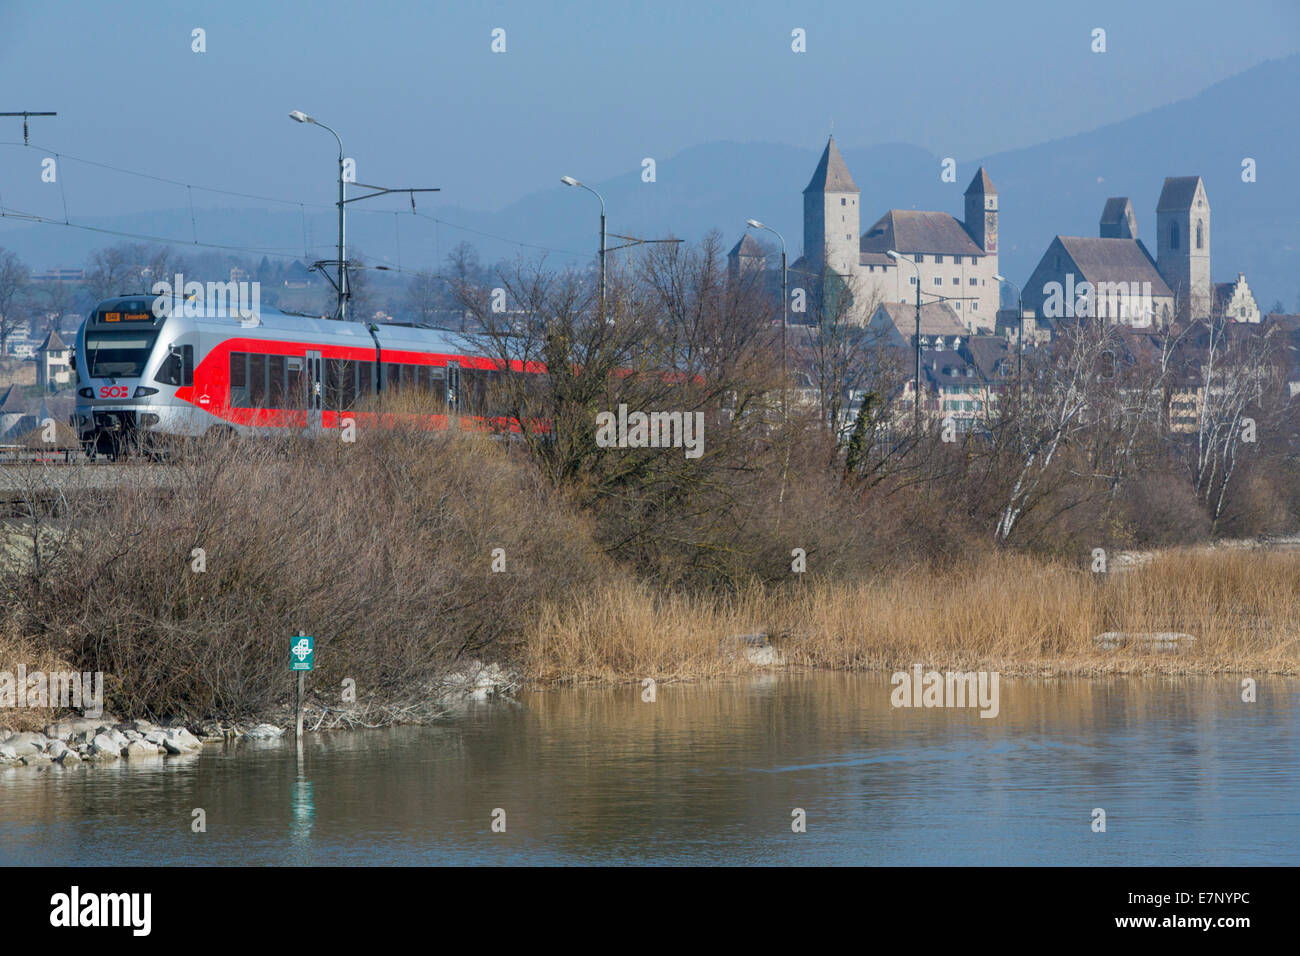 Zurich lake, SOB, lake dam, Rapperswil SG, spring, lake, lakes, town, city, SG, canton St. Gallen, railway, train, - Stock Image